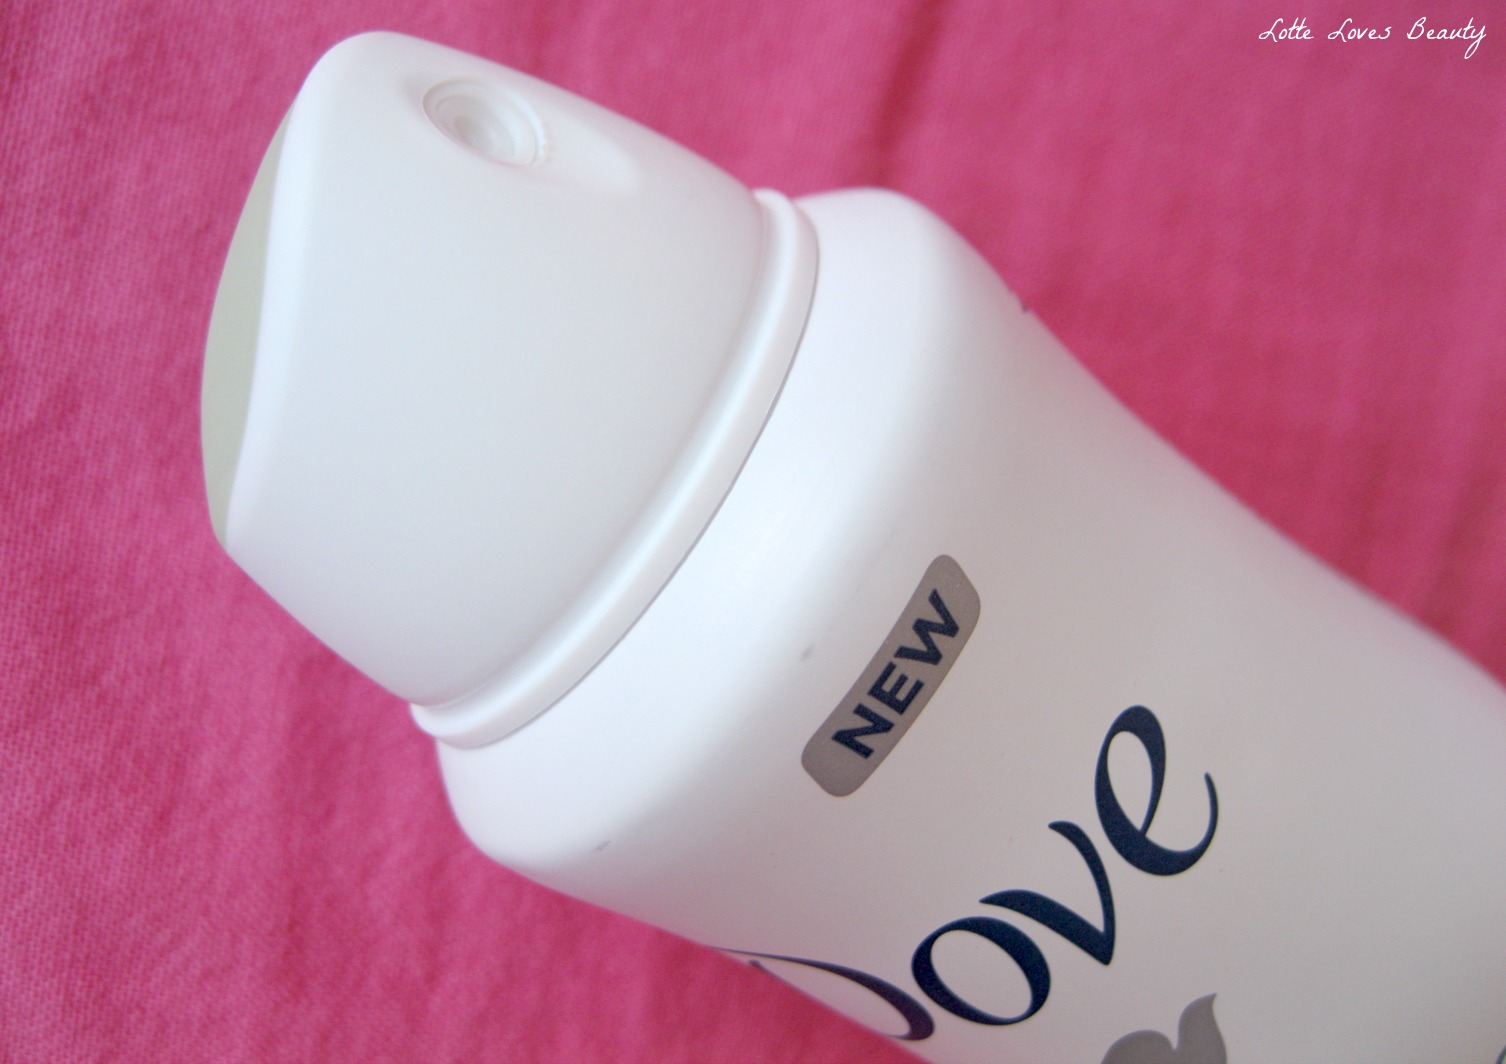 Dove Natural Touch Dead Sea Minerals Deodorant